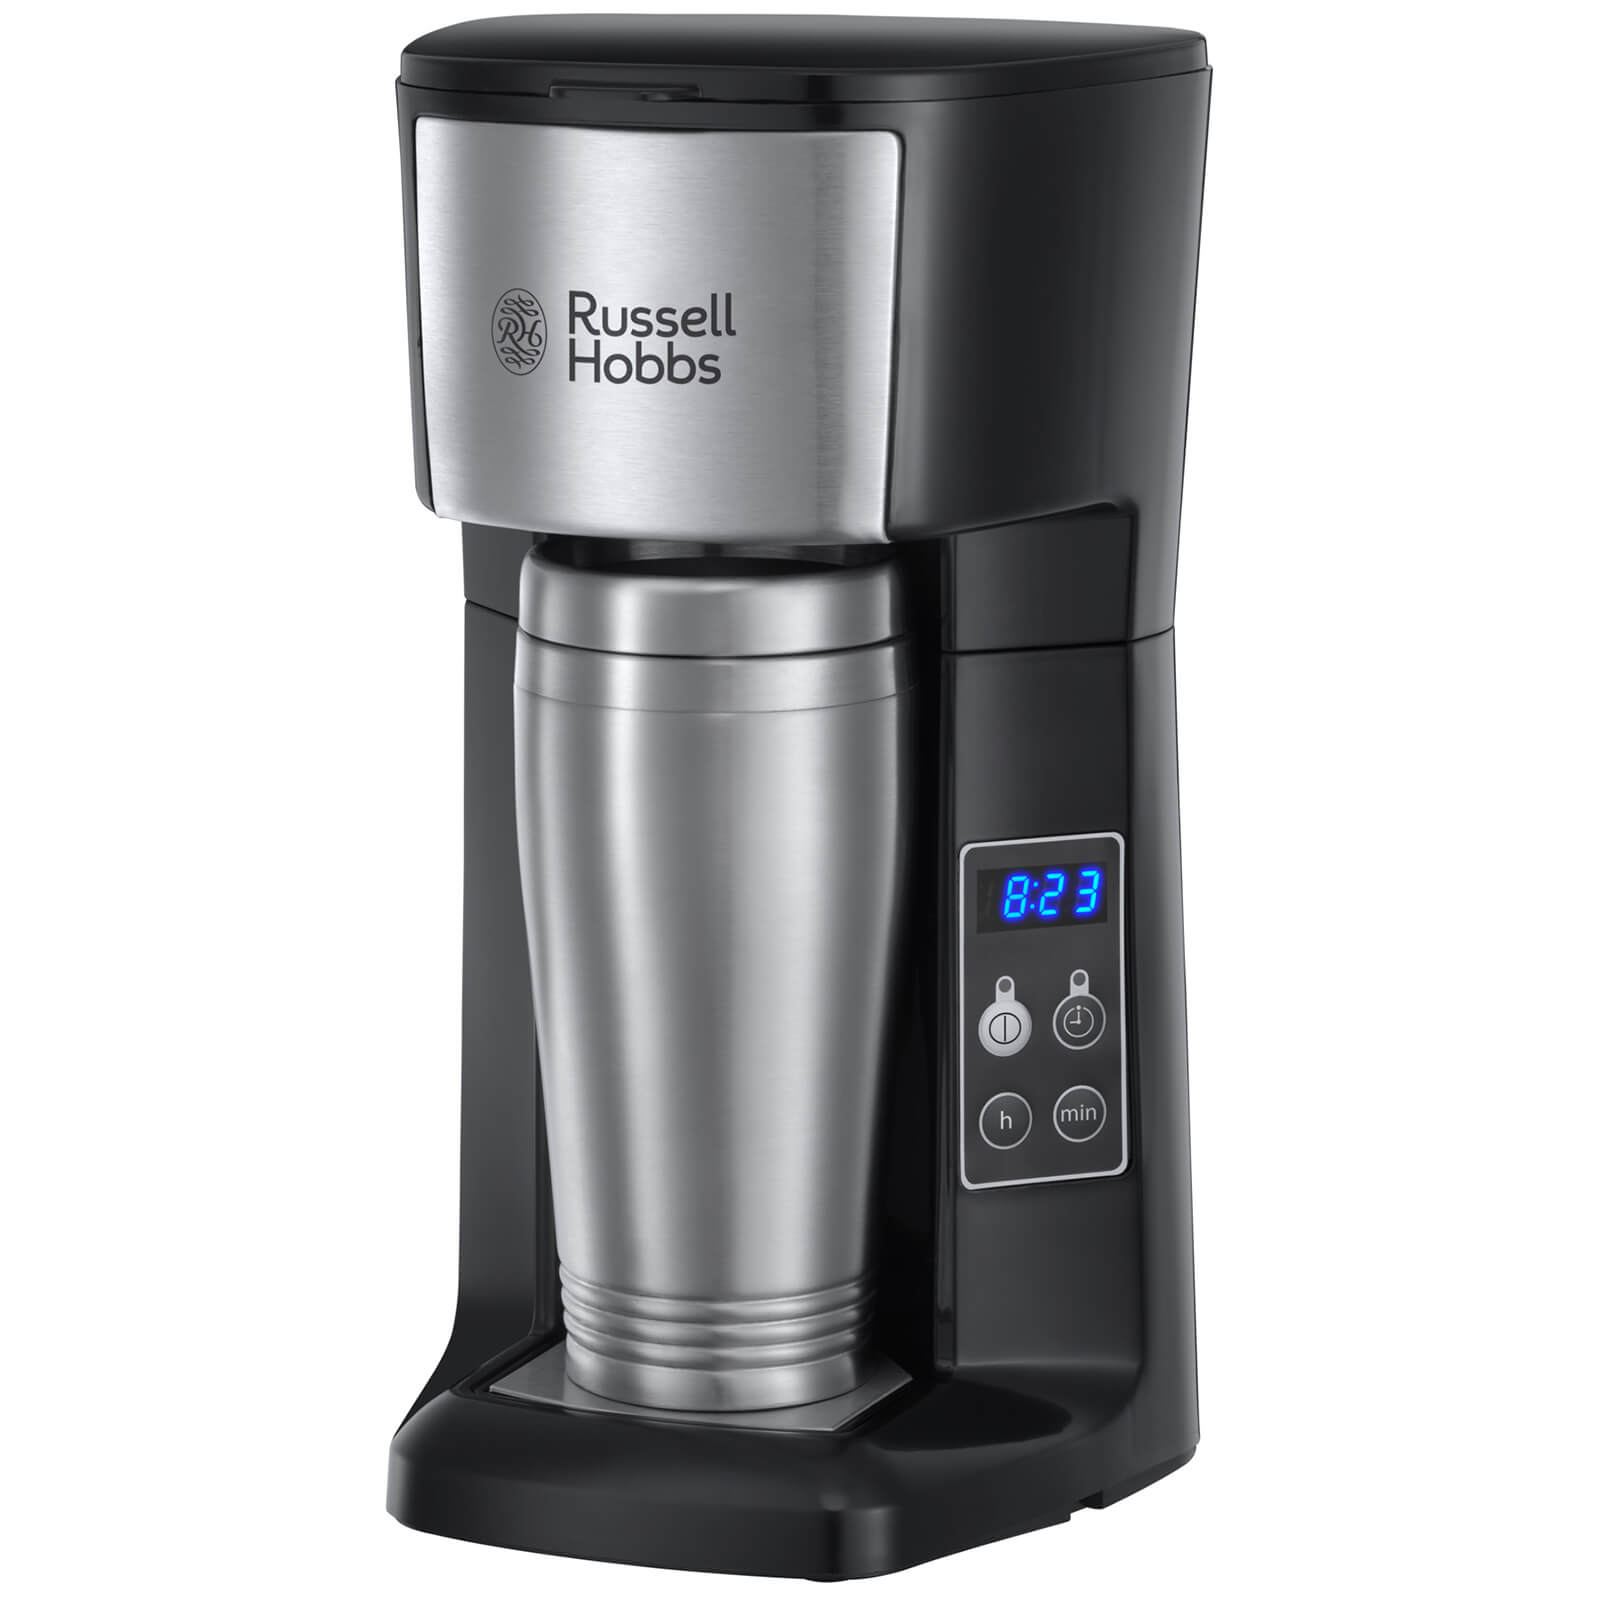 Russell Hobbs 22630 650W Brew and Go Coffee Maker - Black